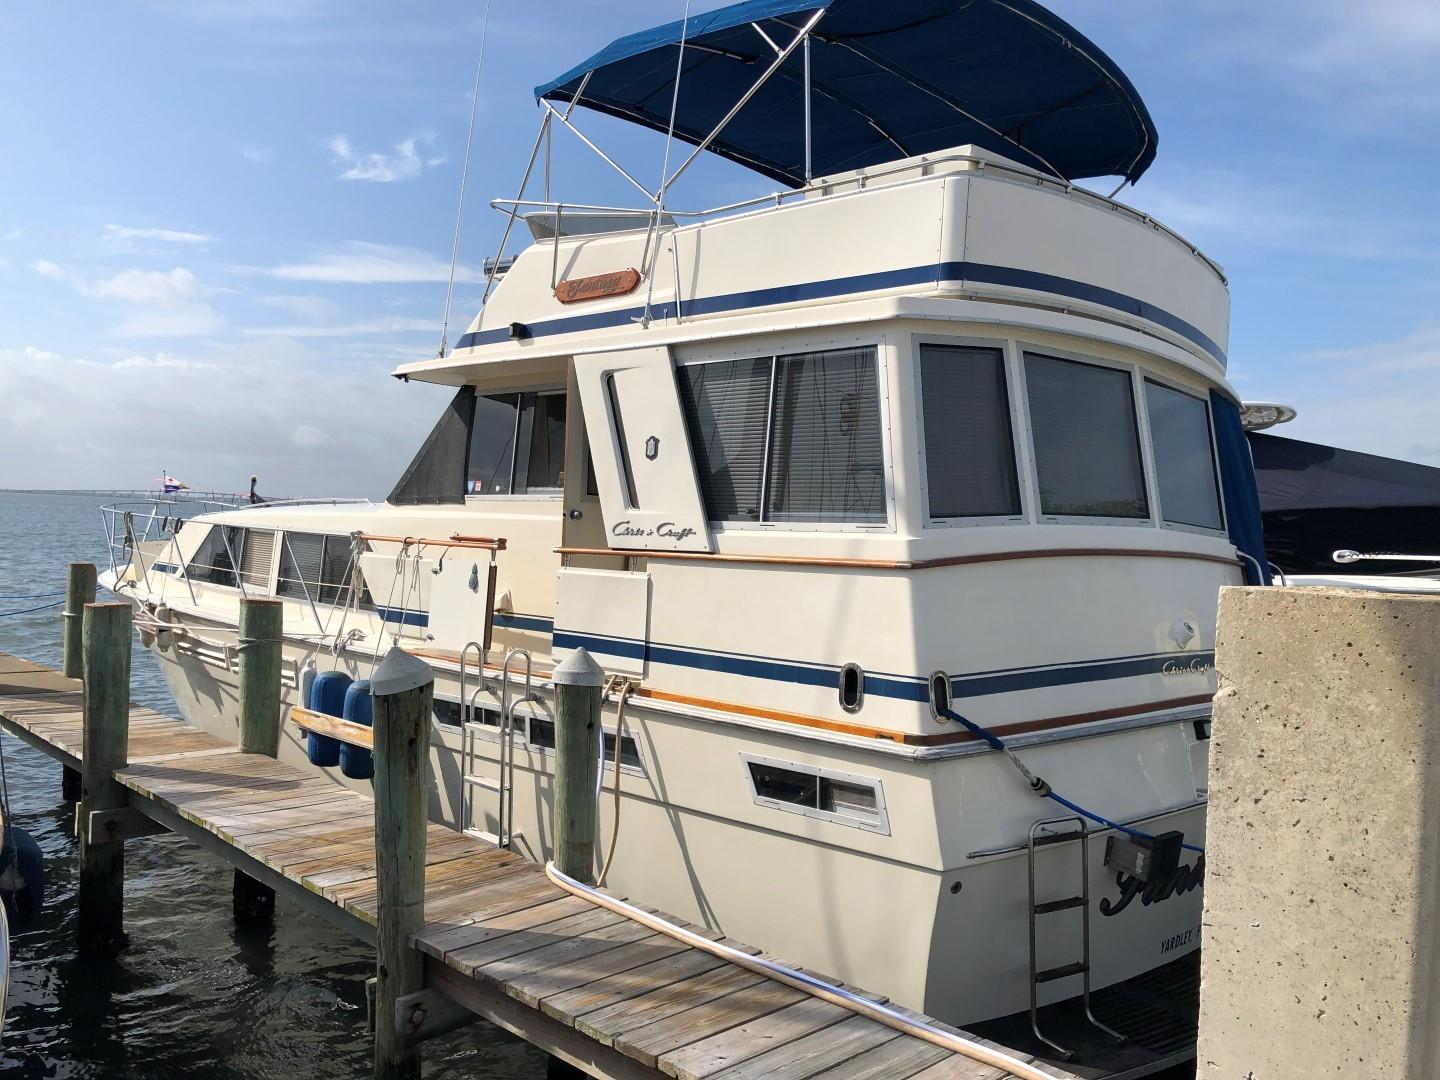 Chris-craft | New and Used Boats for Sale in Florida